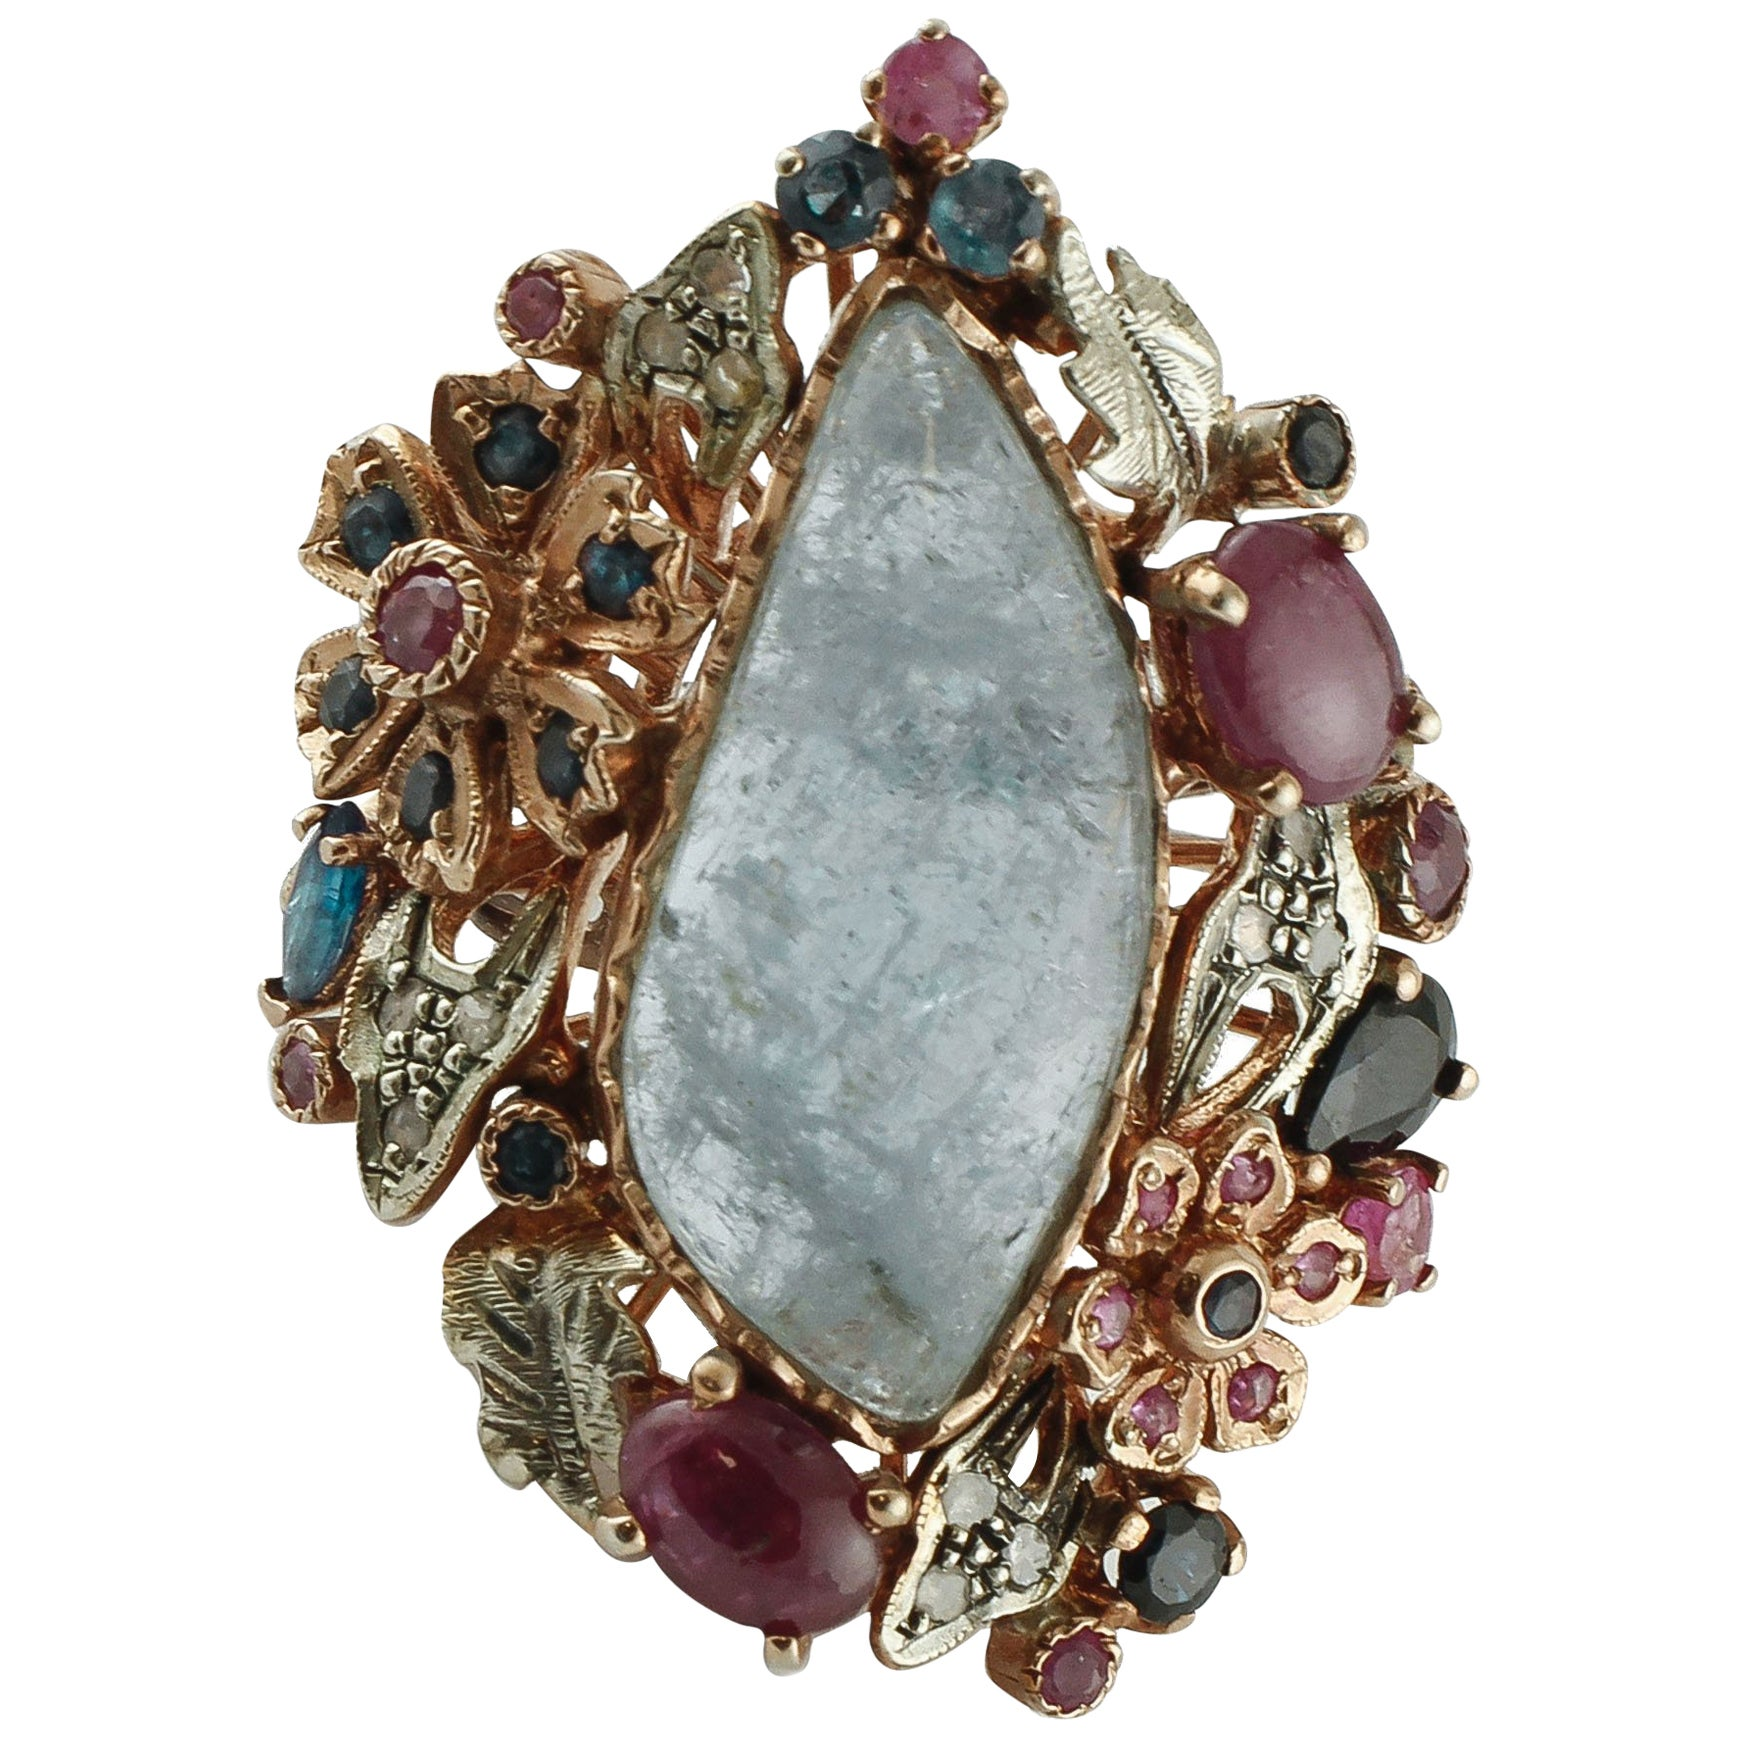 Central Aquamarine Diamonds, Rubies, Blue Sapphires 9 Karat Gold and Silver Ring